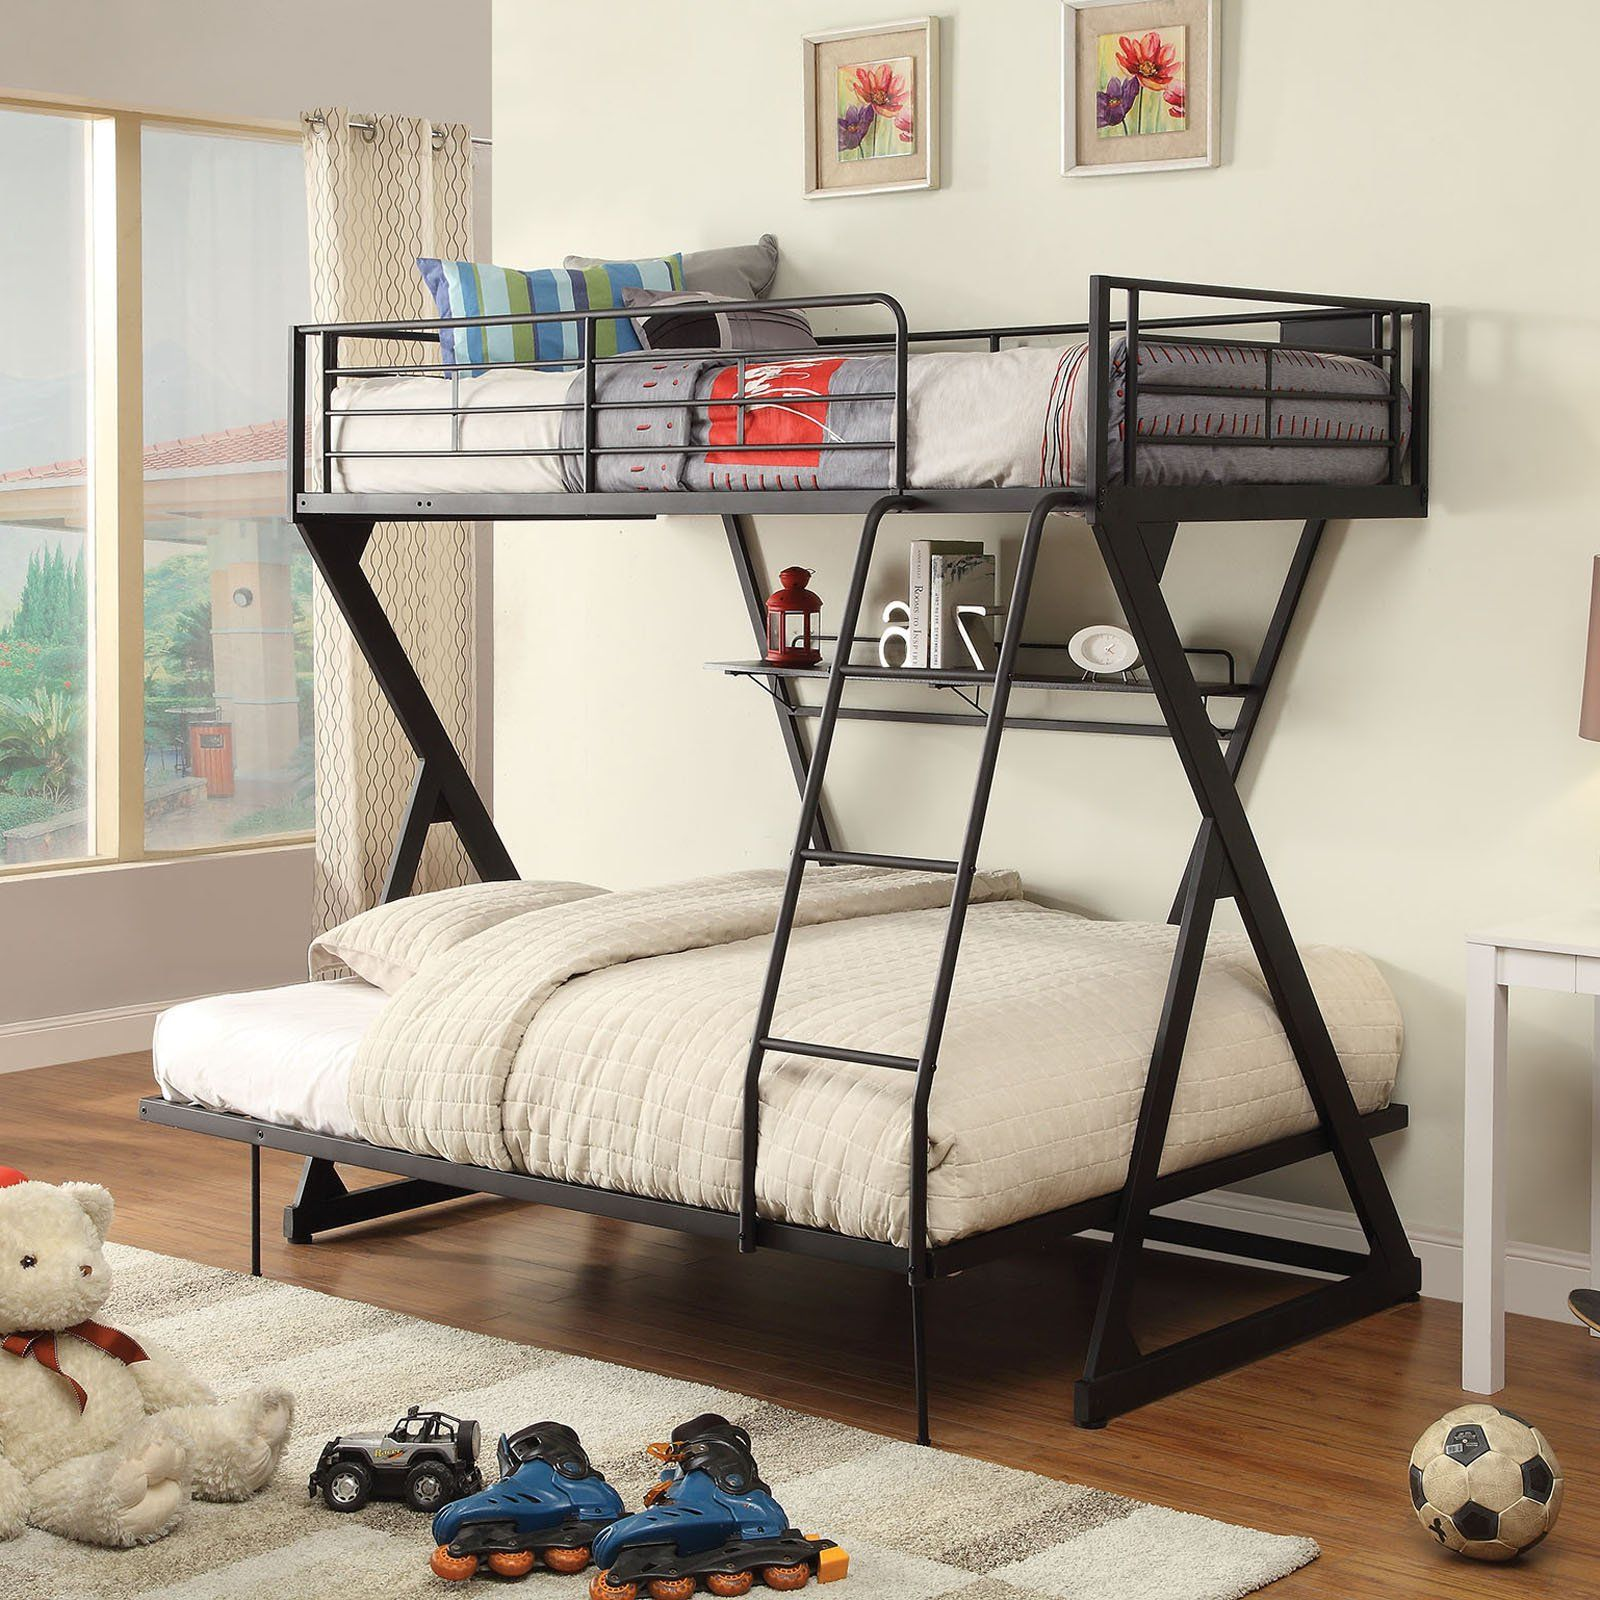 rooms bed stands beds table diy of with unique night full living bedroom elegant frame platform bookshelf bemalas floating awesome inspirations size lamps